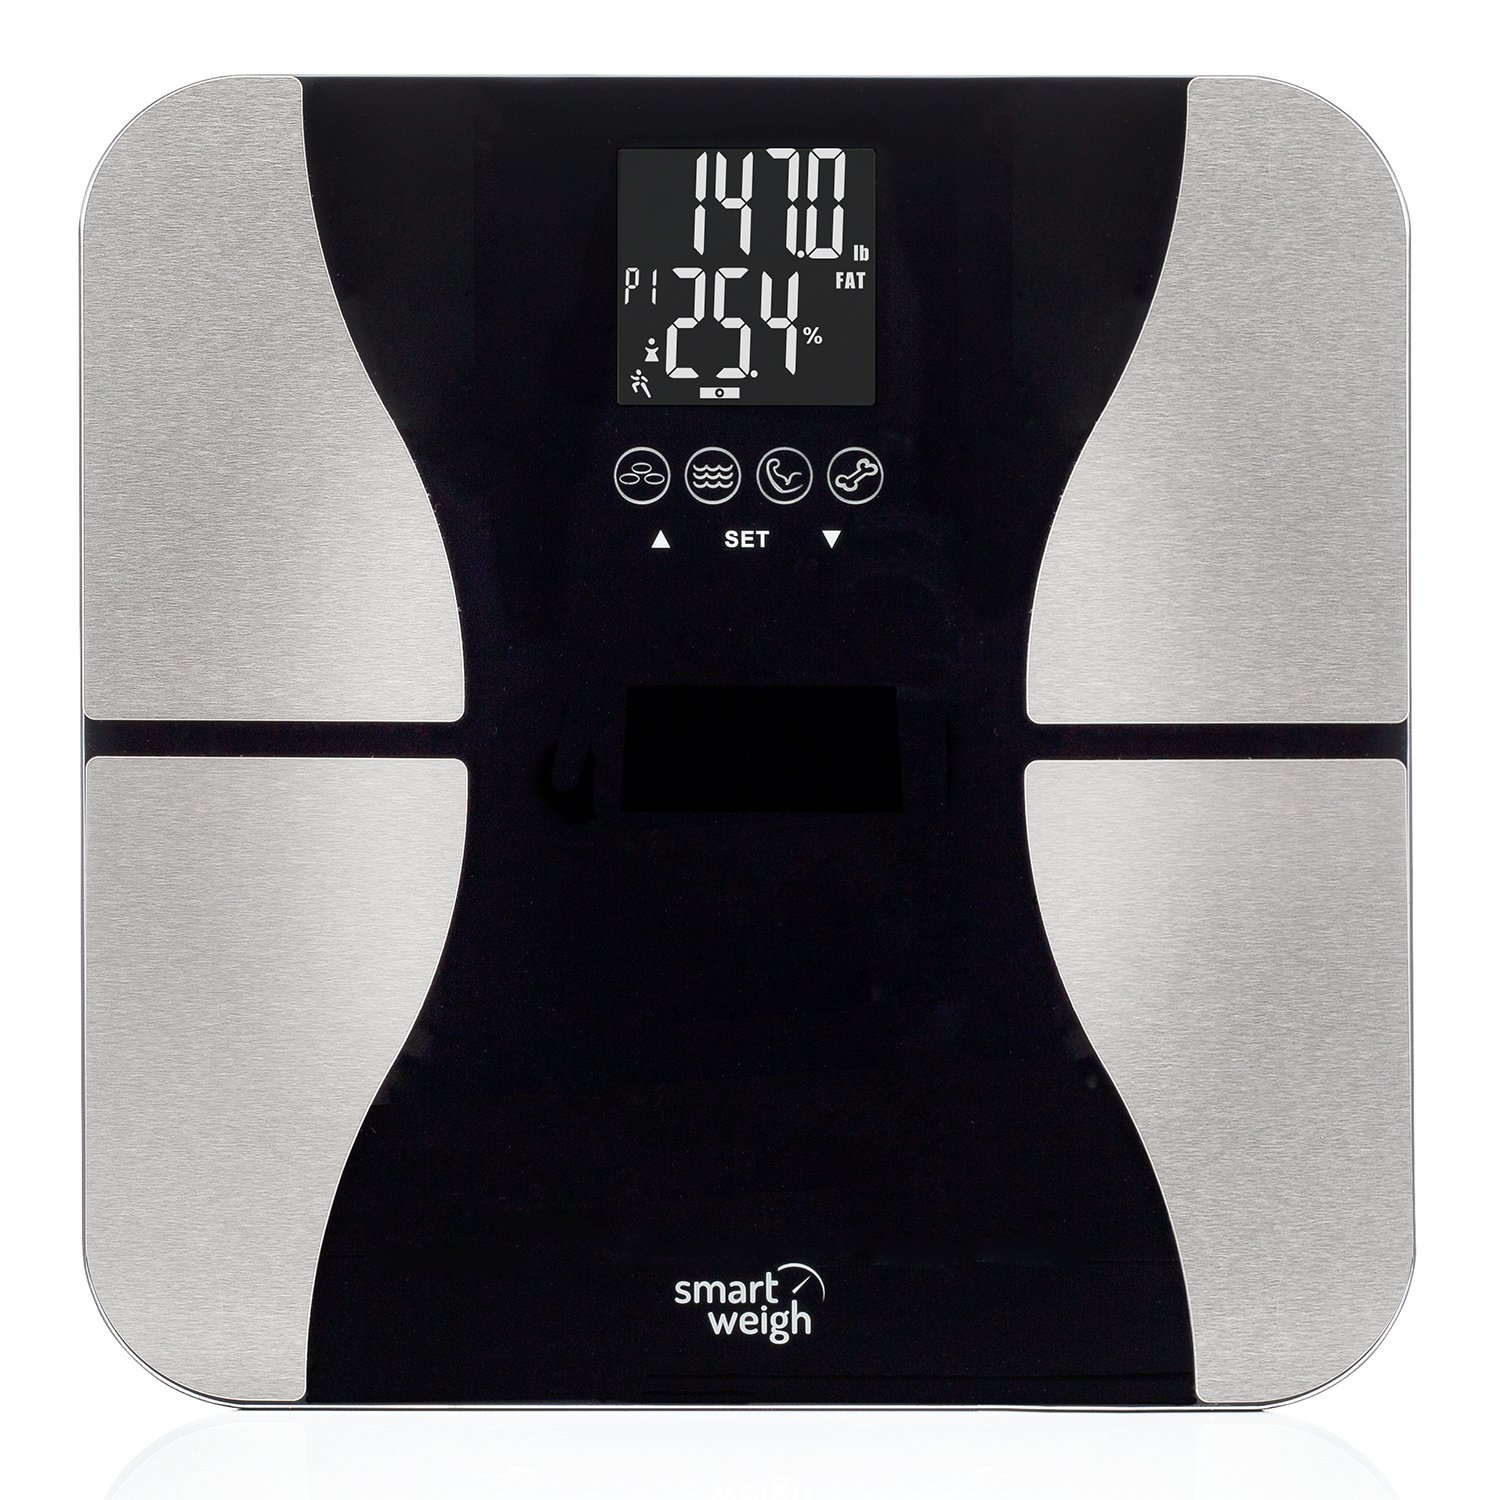 Smart Weigh Body Fat Digital Precision Scale with Tempered Glass Platform, Eight User Recognition, and 440 lb Weight Capacity, Measures Weight, Body Fat, Water, Muscle and Bone Mass SBS500